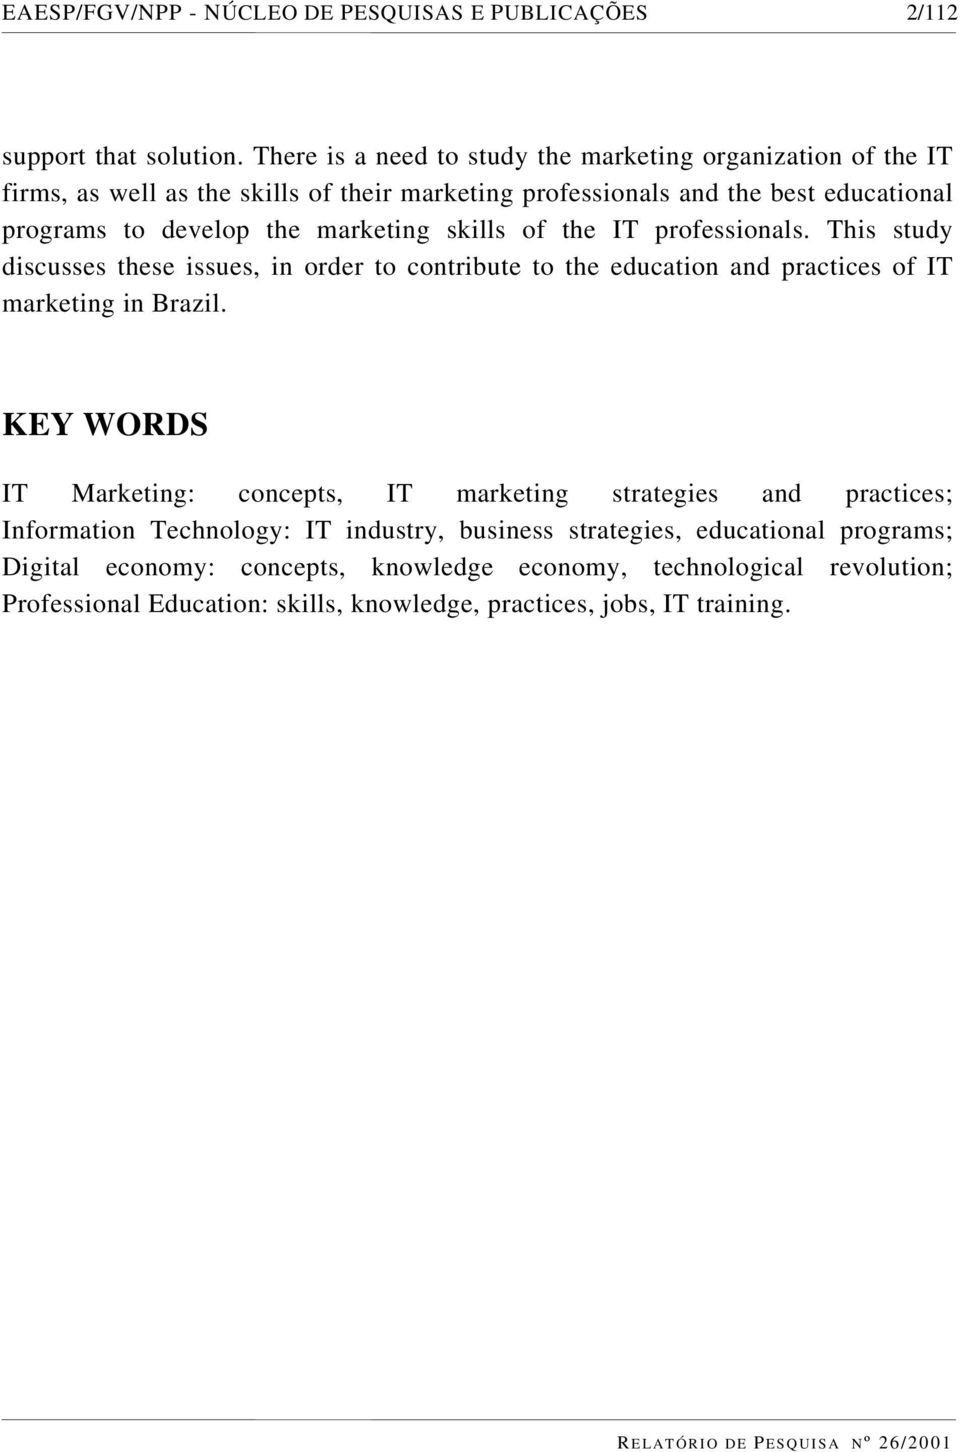 marketing skills of the IT professionals. This study discusses these issues, in order to contribute to the education and practices of IT marketing in Brazil.